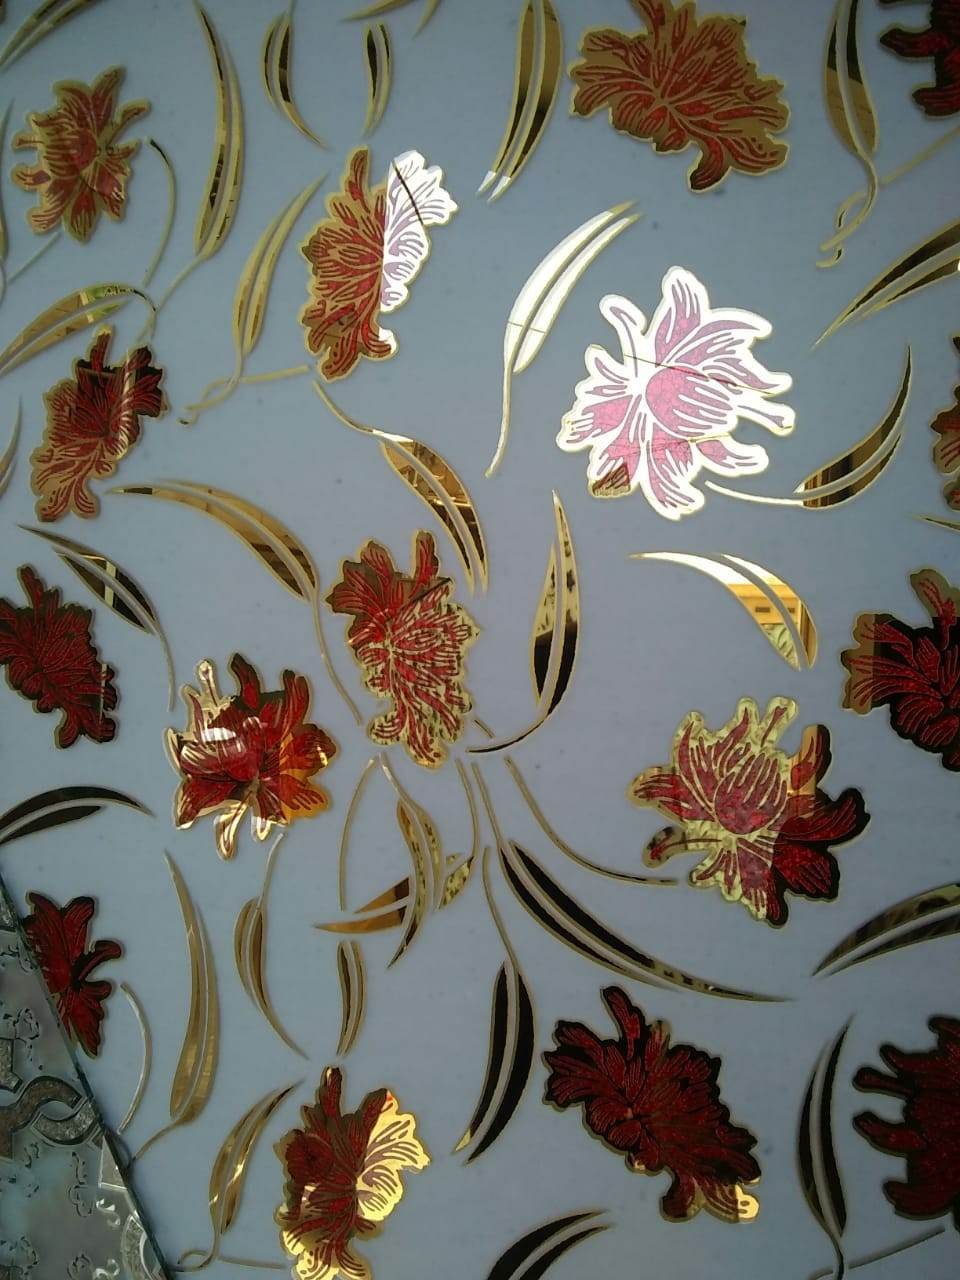 RED COLORED FLOWER 72″ X 96″